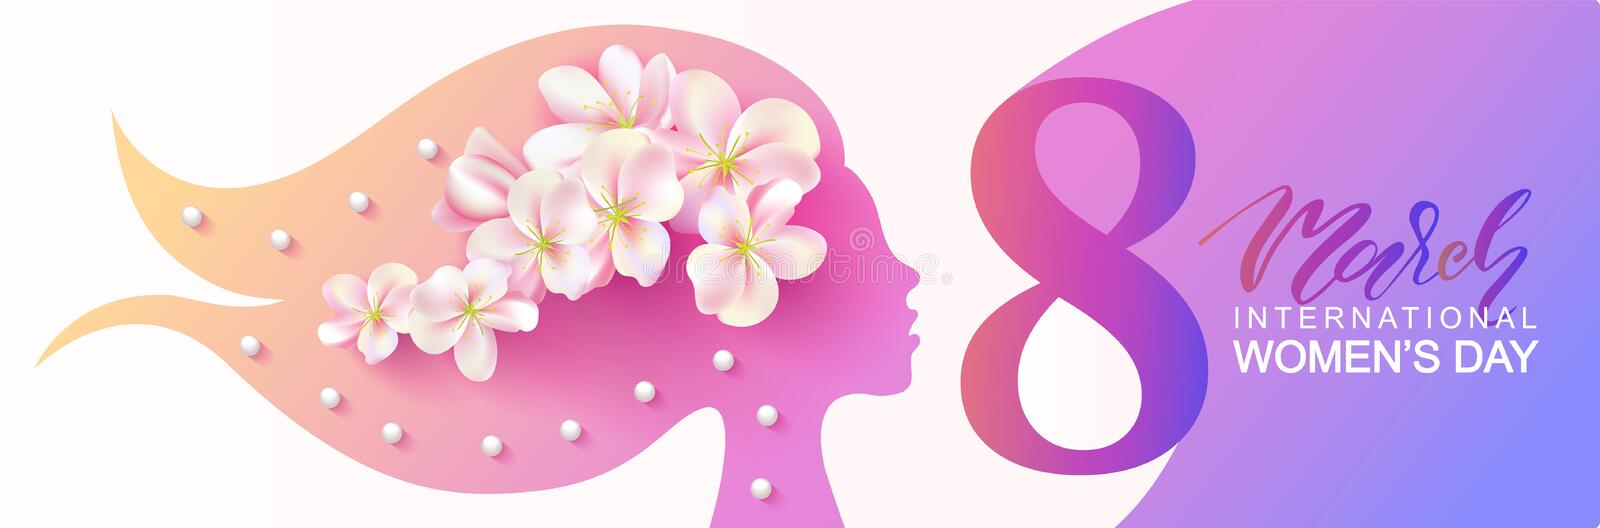 8 March Happy Women s Day banner. Beautiful Background with female silhouette ,flowers and beads.Vector illustration for royalty free illustration